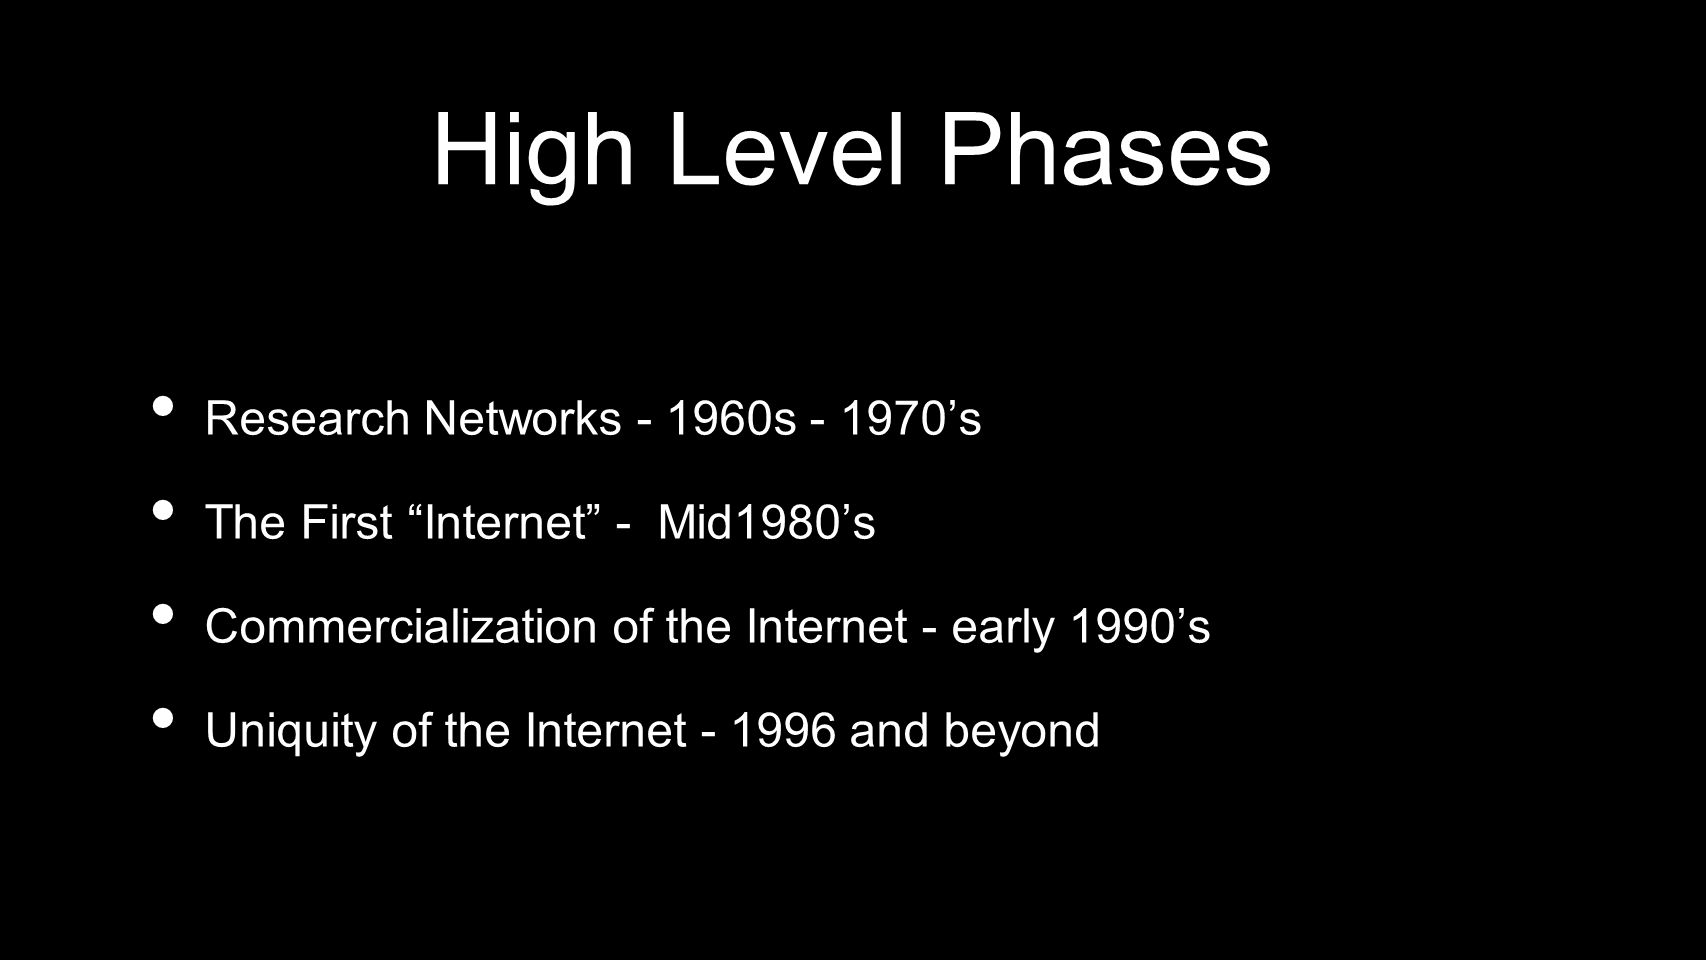 High Level Phases Research Networks - 1960s - 1970s The First Internet - Mid1980s Commercialization of the Internet - early 1990s Uniquity of the Inte